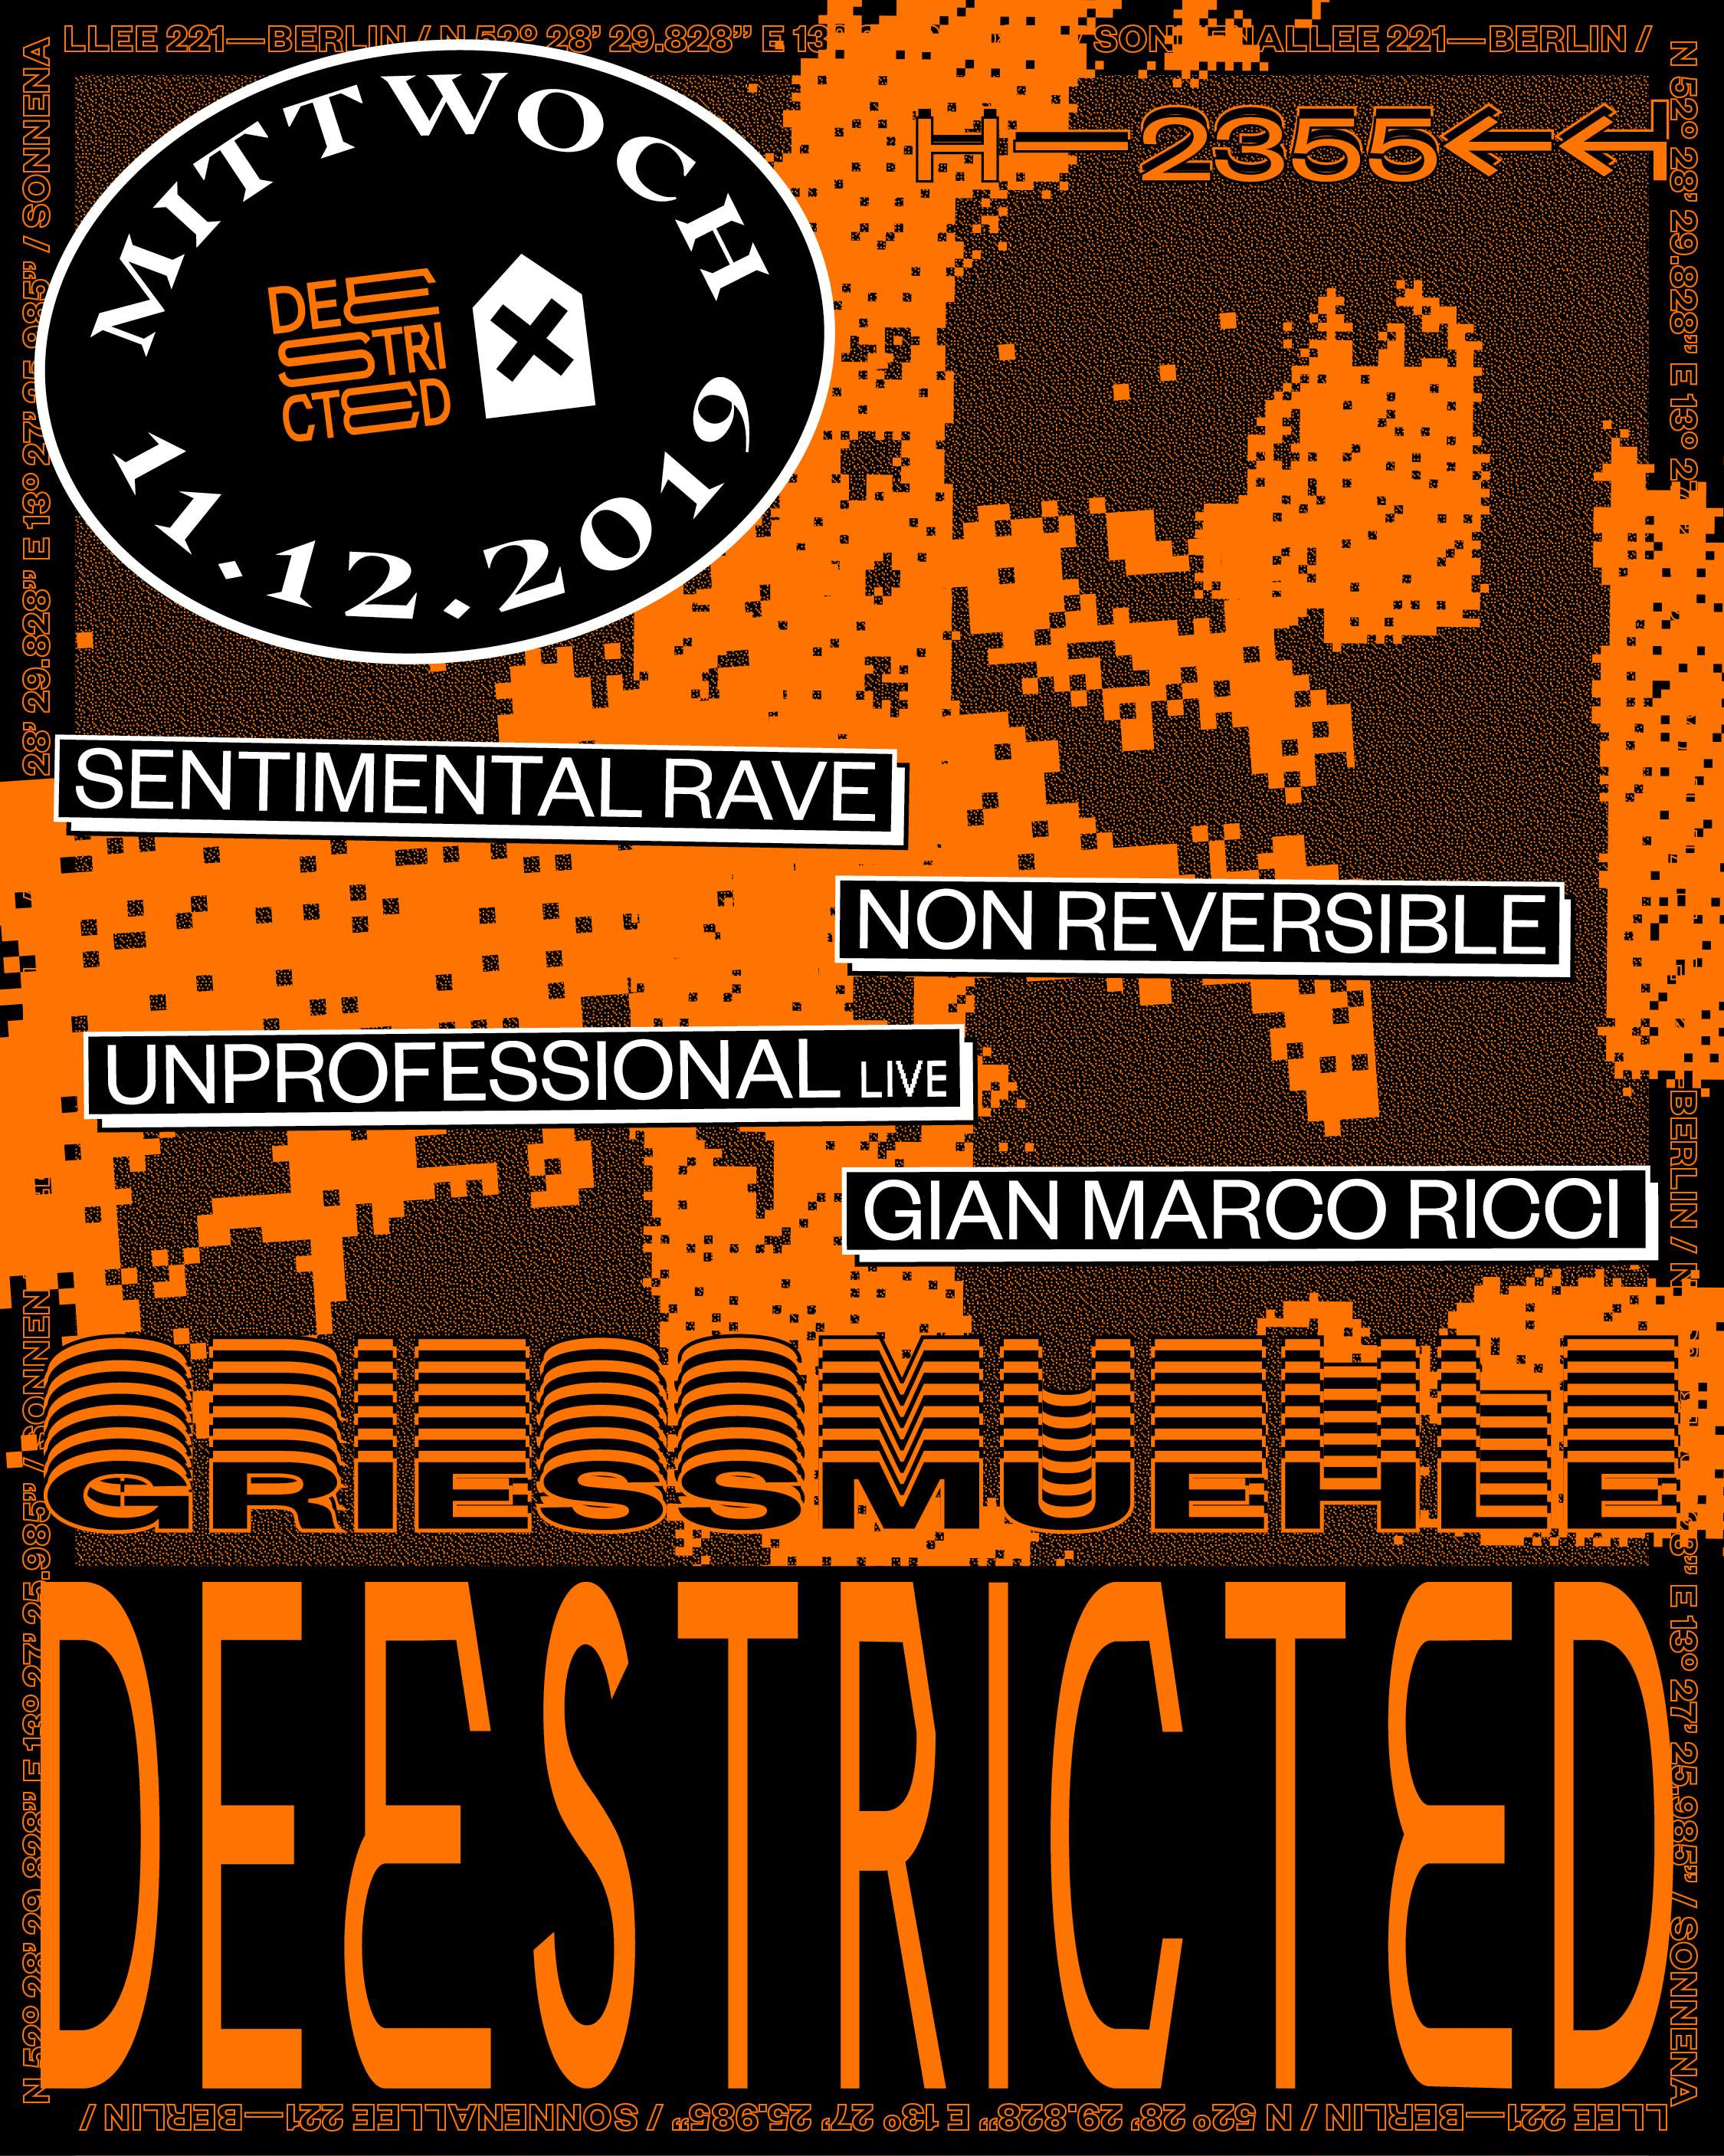 Deestricted with Sentimental Rave Non reversible